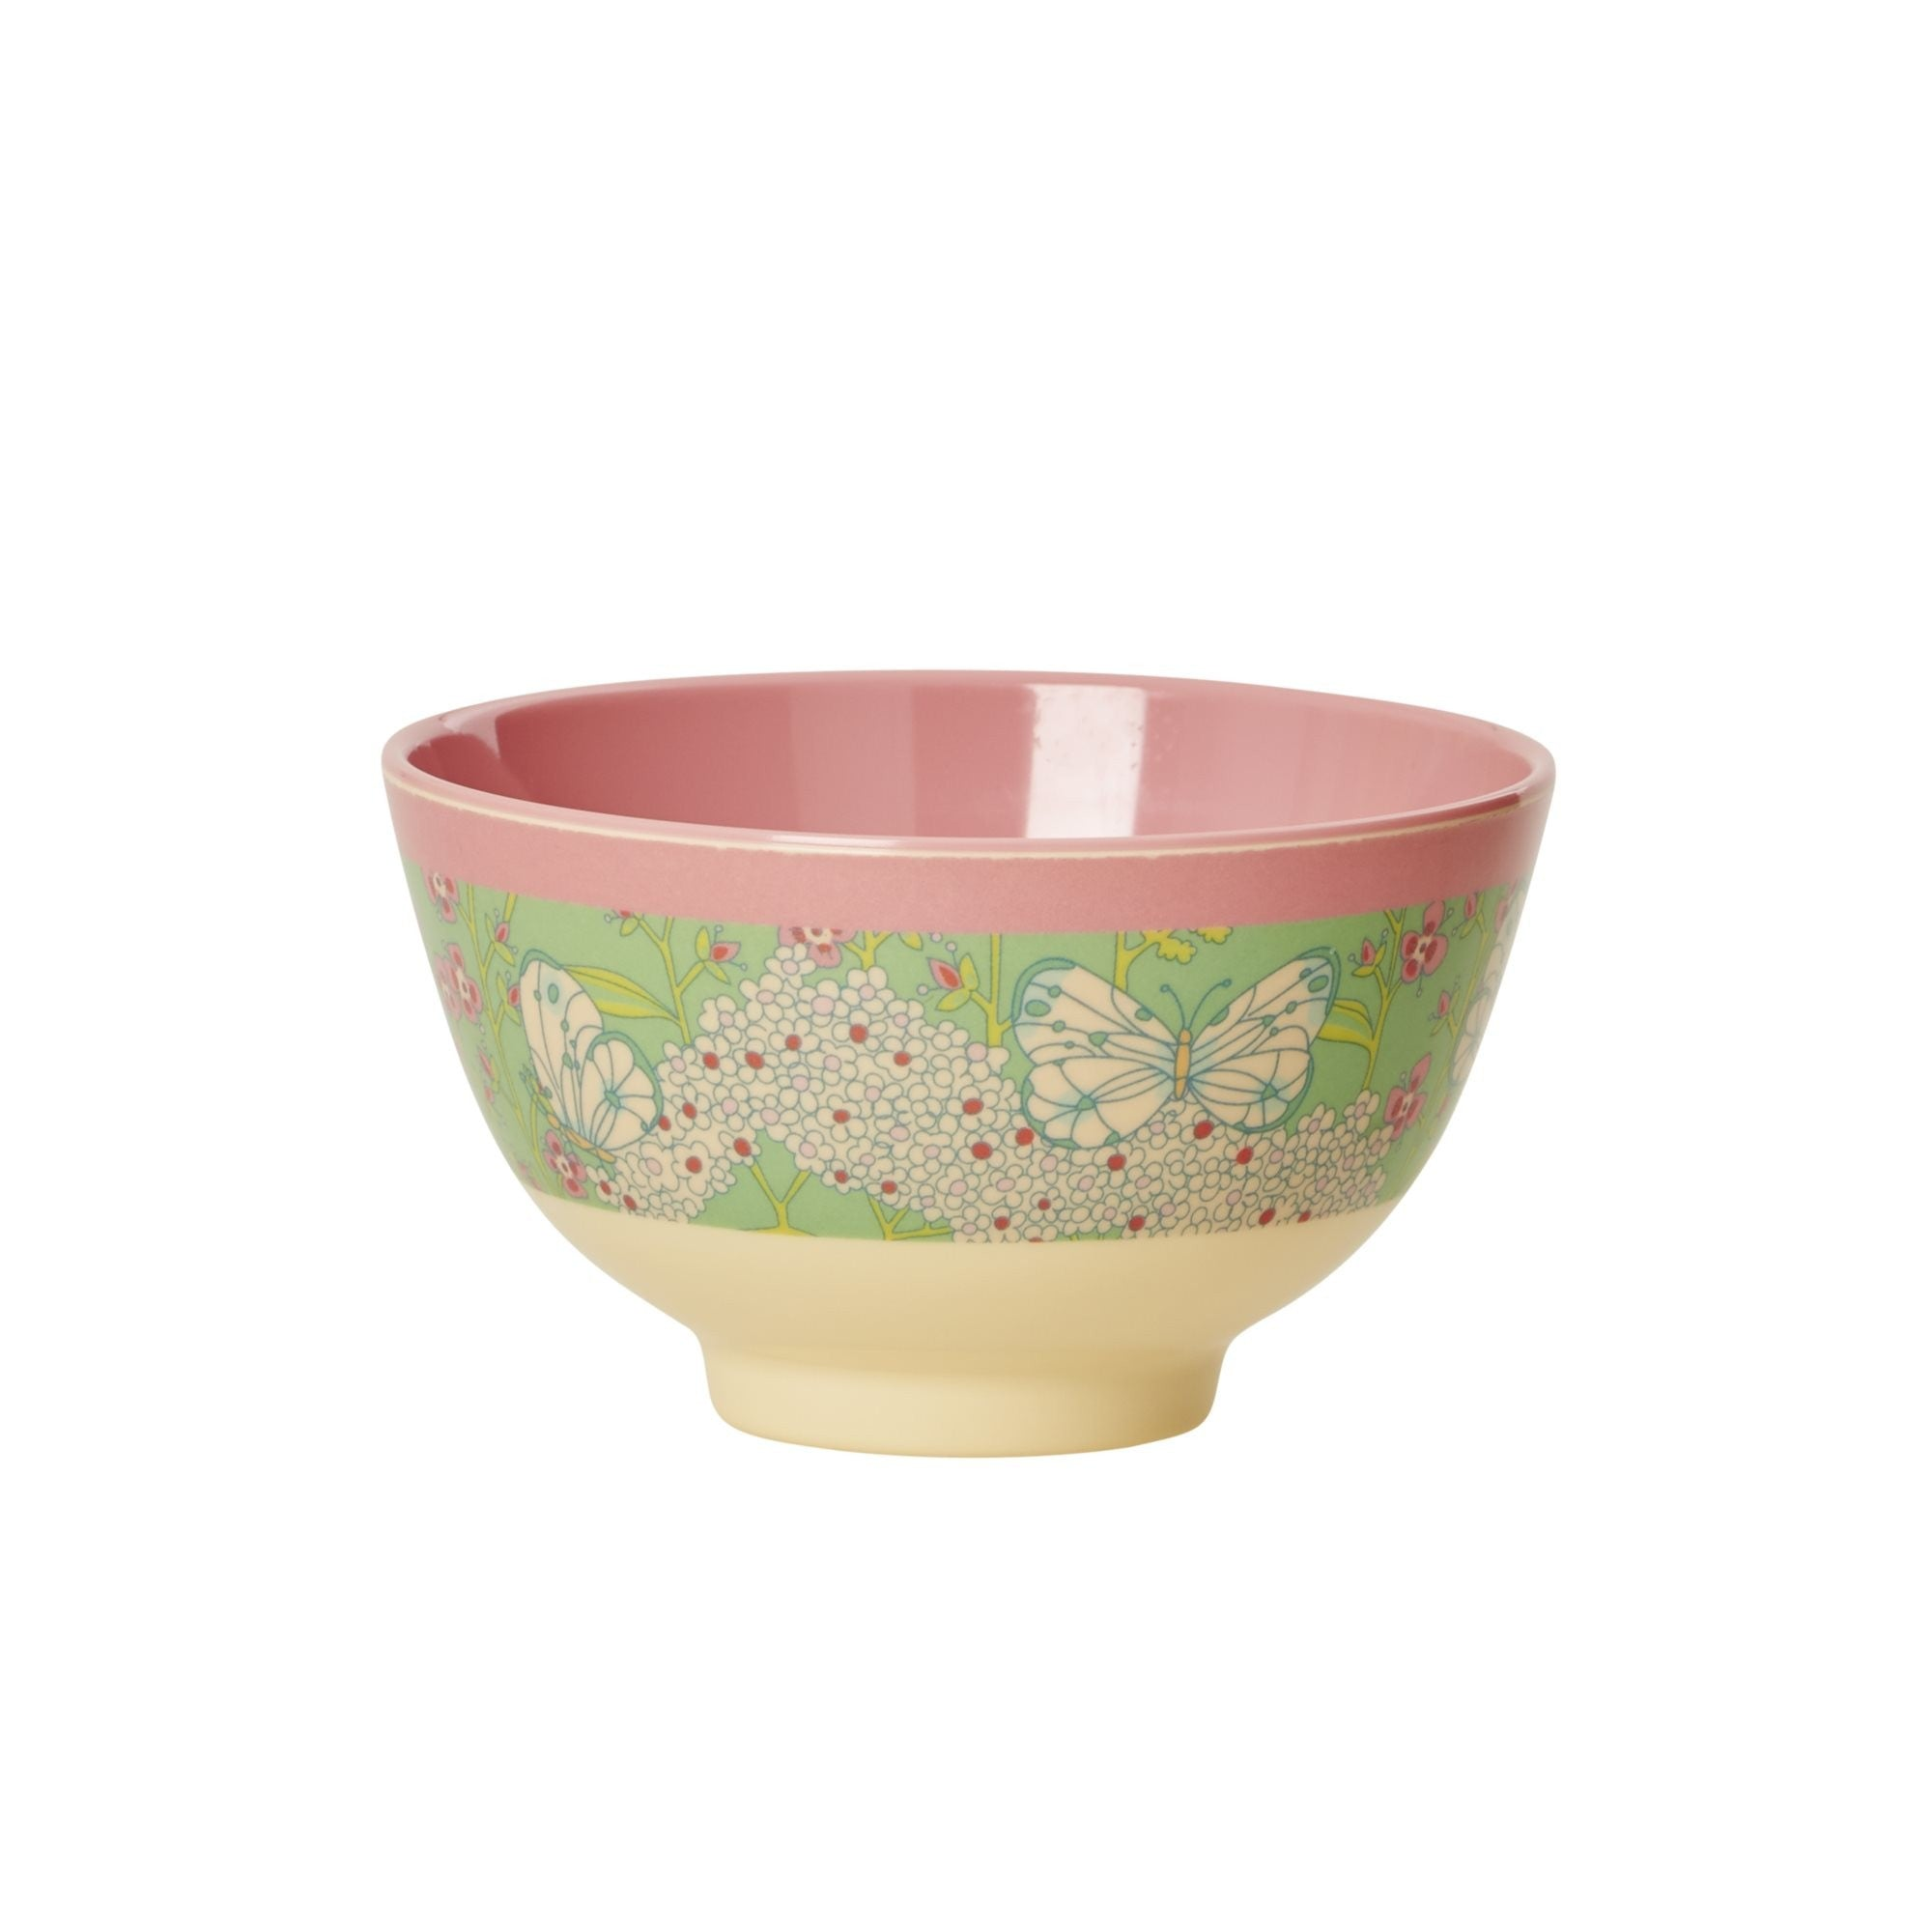 Rice DK | Small Two-Tone Melamine Bowl with Butterfly & Flower Print